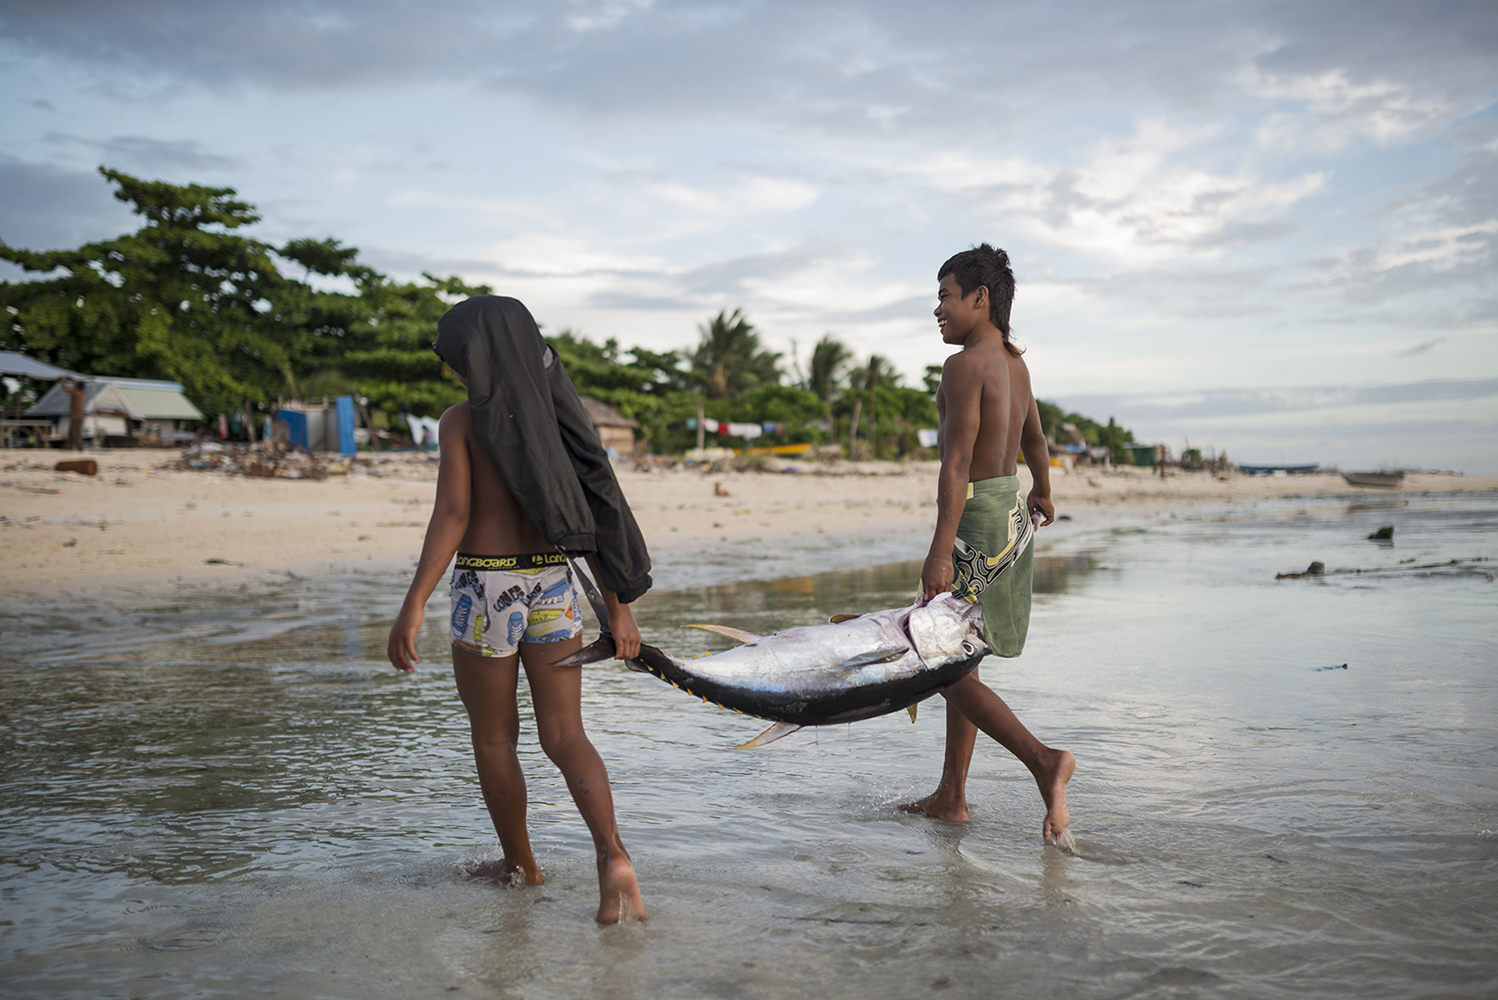 Betio, Tarawa Island, Kiribati, Pacific Ocean Young boys in the village Te O Ni Beeki carrying a yellowfin tuna to the shore on Tarawa Island, Kiribati. The nation is considered one of the least developed and poorest countries in the world with people whose livelihoods depend on the fish. Since the arrival of foreign fishing vessels in Kiribati waters the catches for the local fishermen has been reduced.